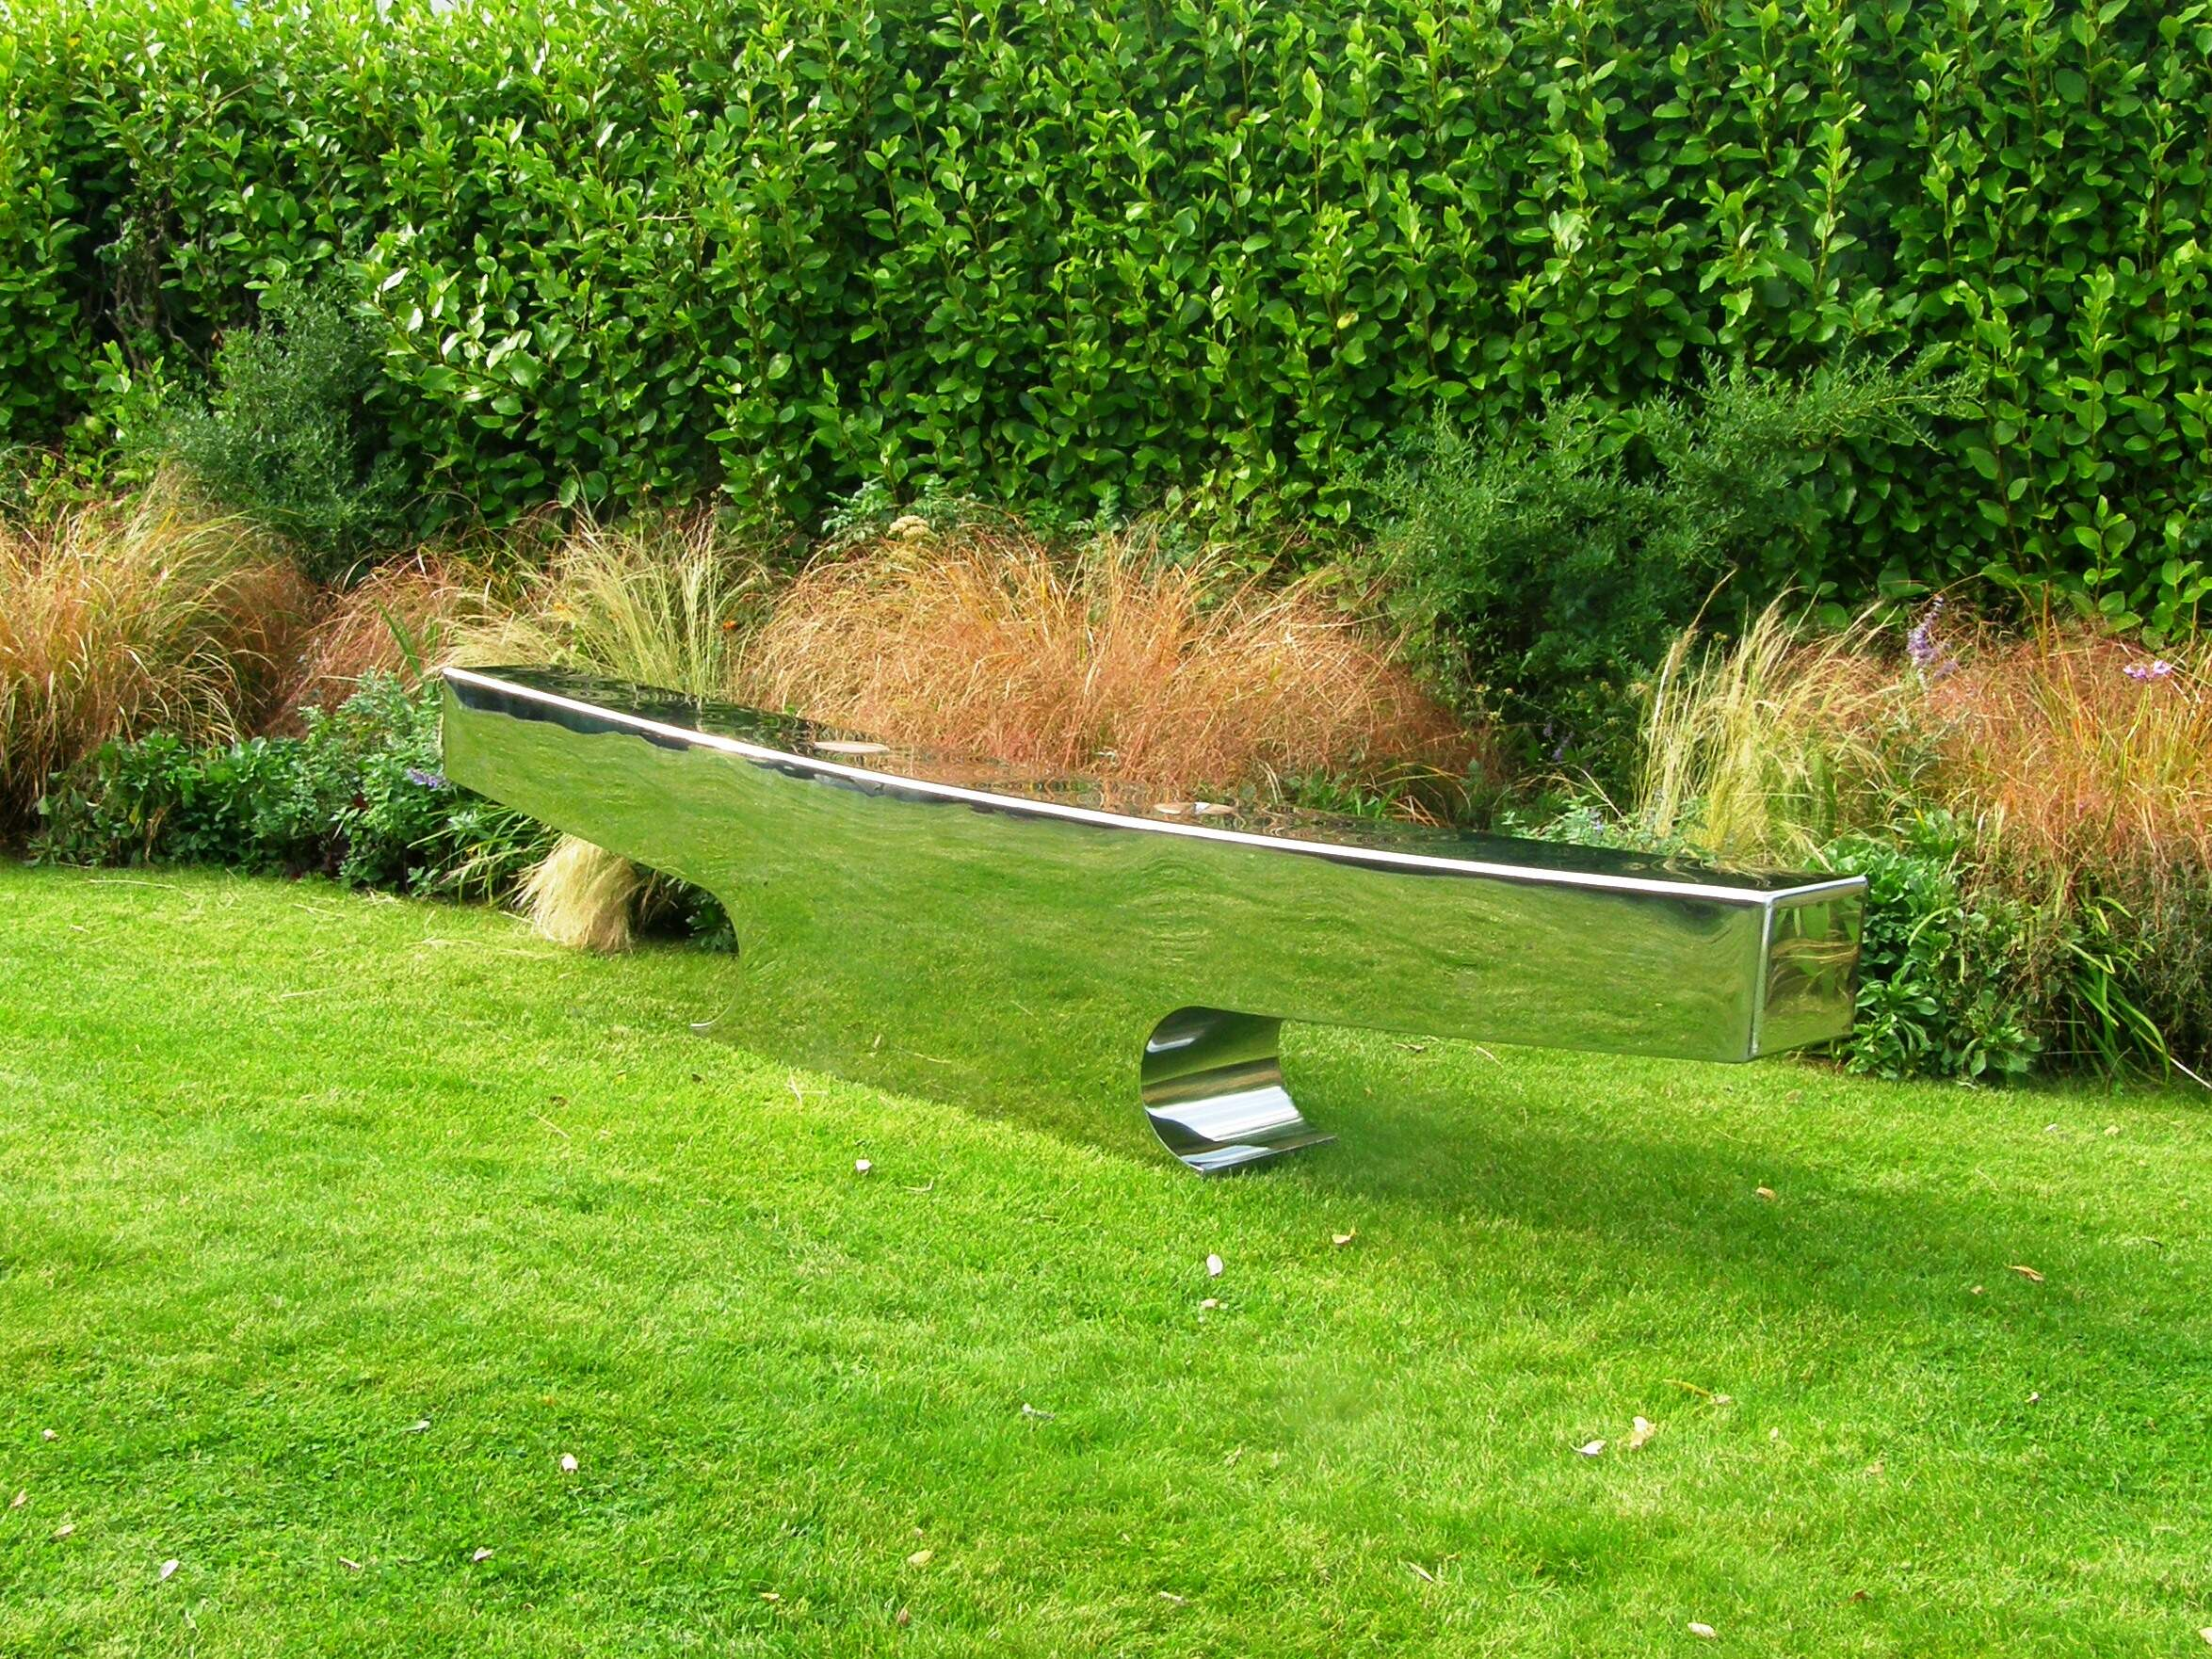 Garden colours reflecting in highly polished panels of stainless steel